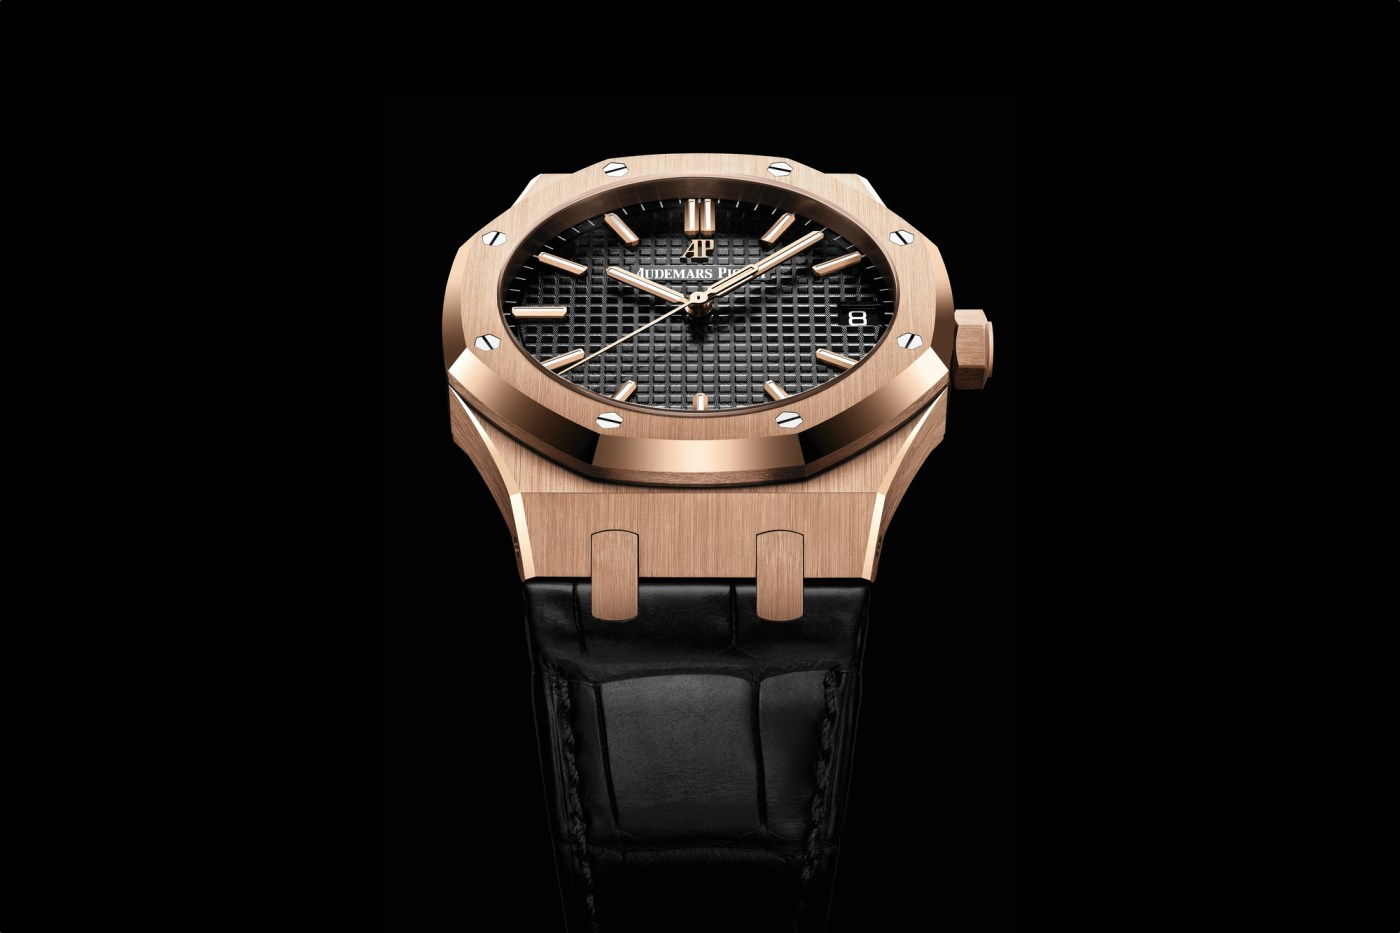 Audemars Piguet Royal Oak 15500 pink gold